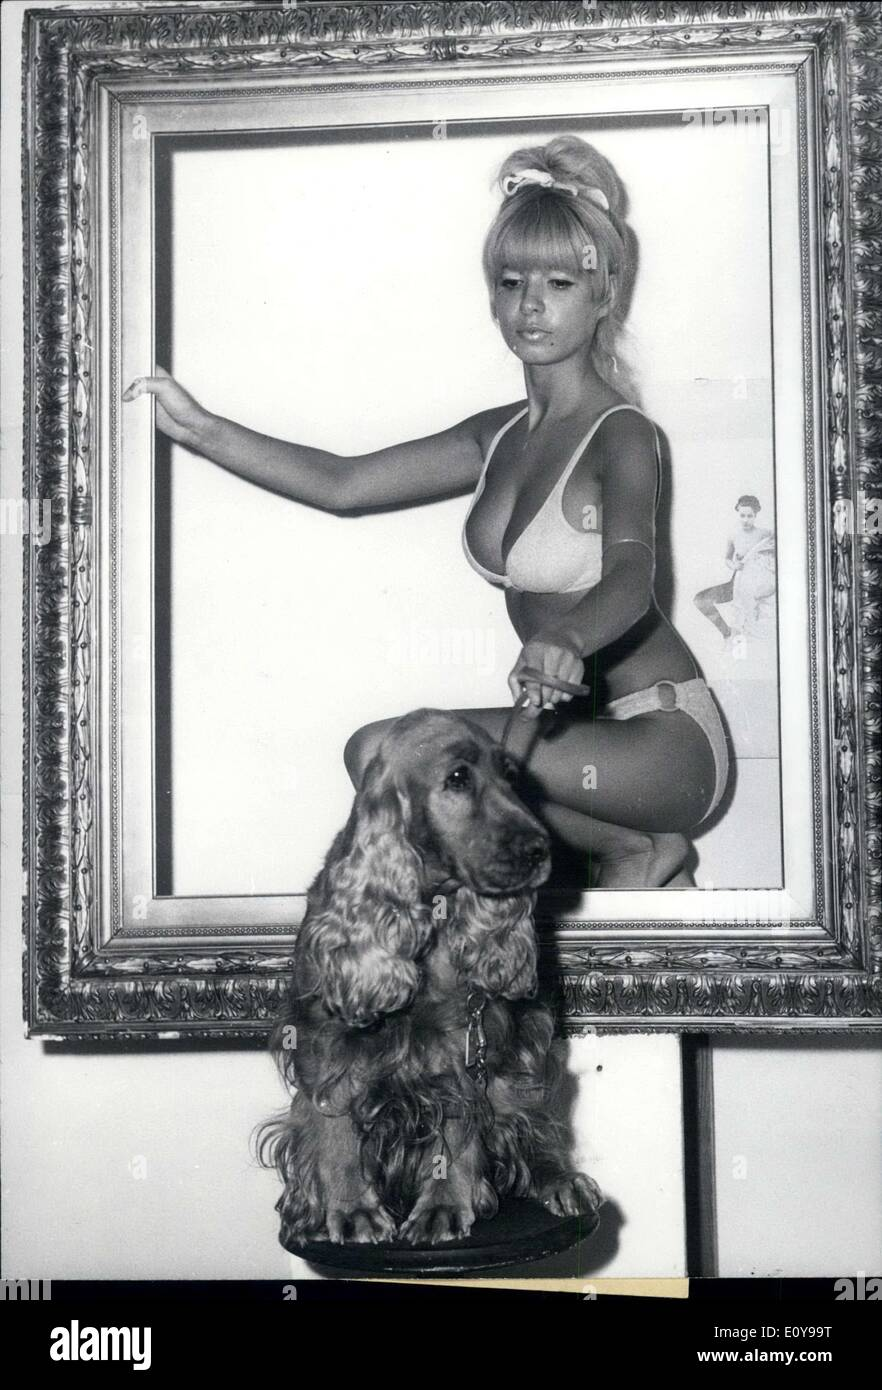 Aug. 25, 1969 - The Marcel Veronese conjured photo story ''Youpi und die Maedchen'' was shown at the Berlin Book Stock Photo